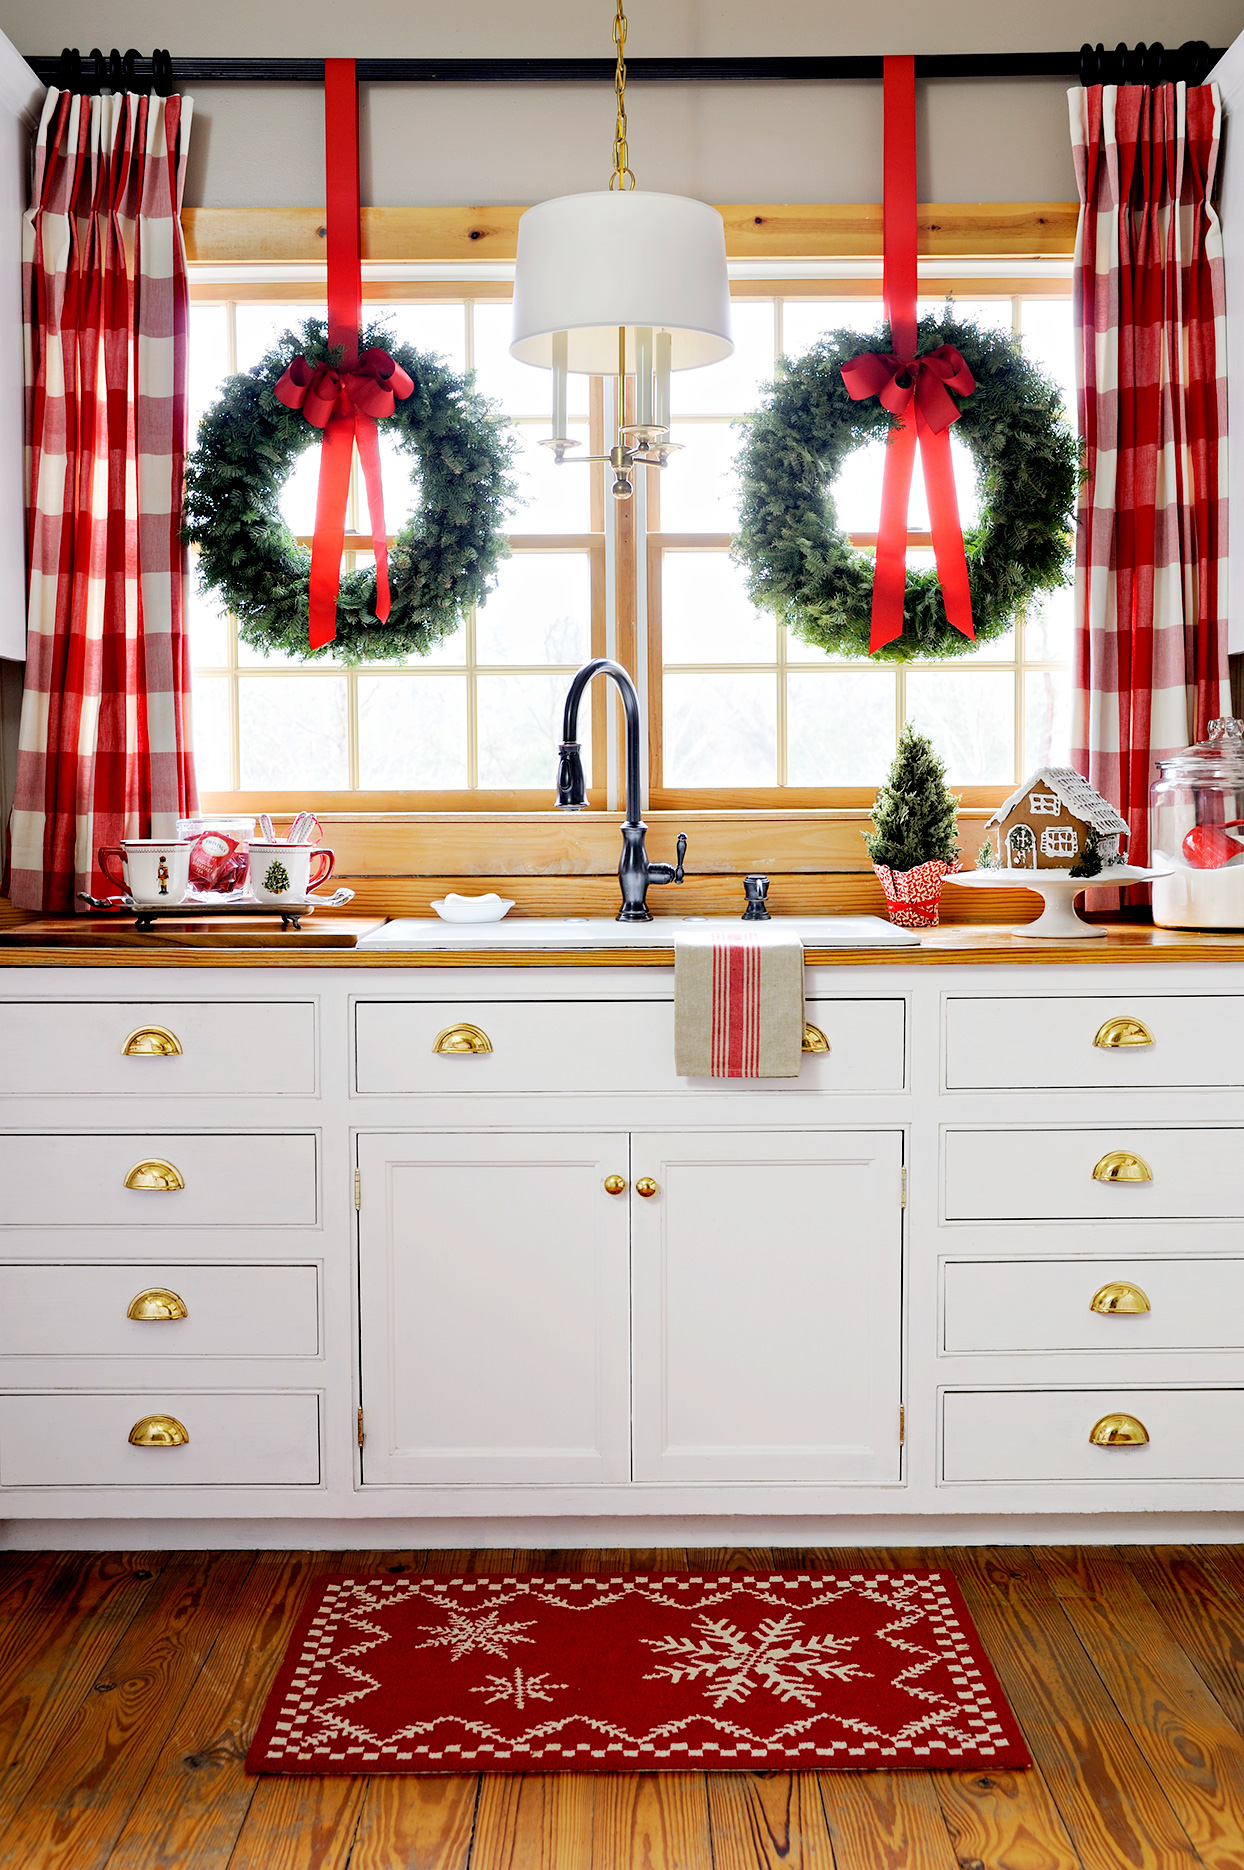 Kitchen decorated with wreaths, red ribbons, red plaid curtains, gingerbread house, and holiday rug